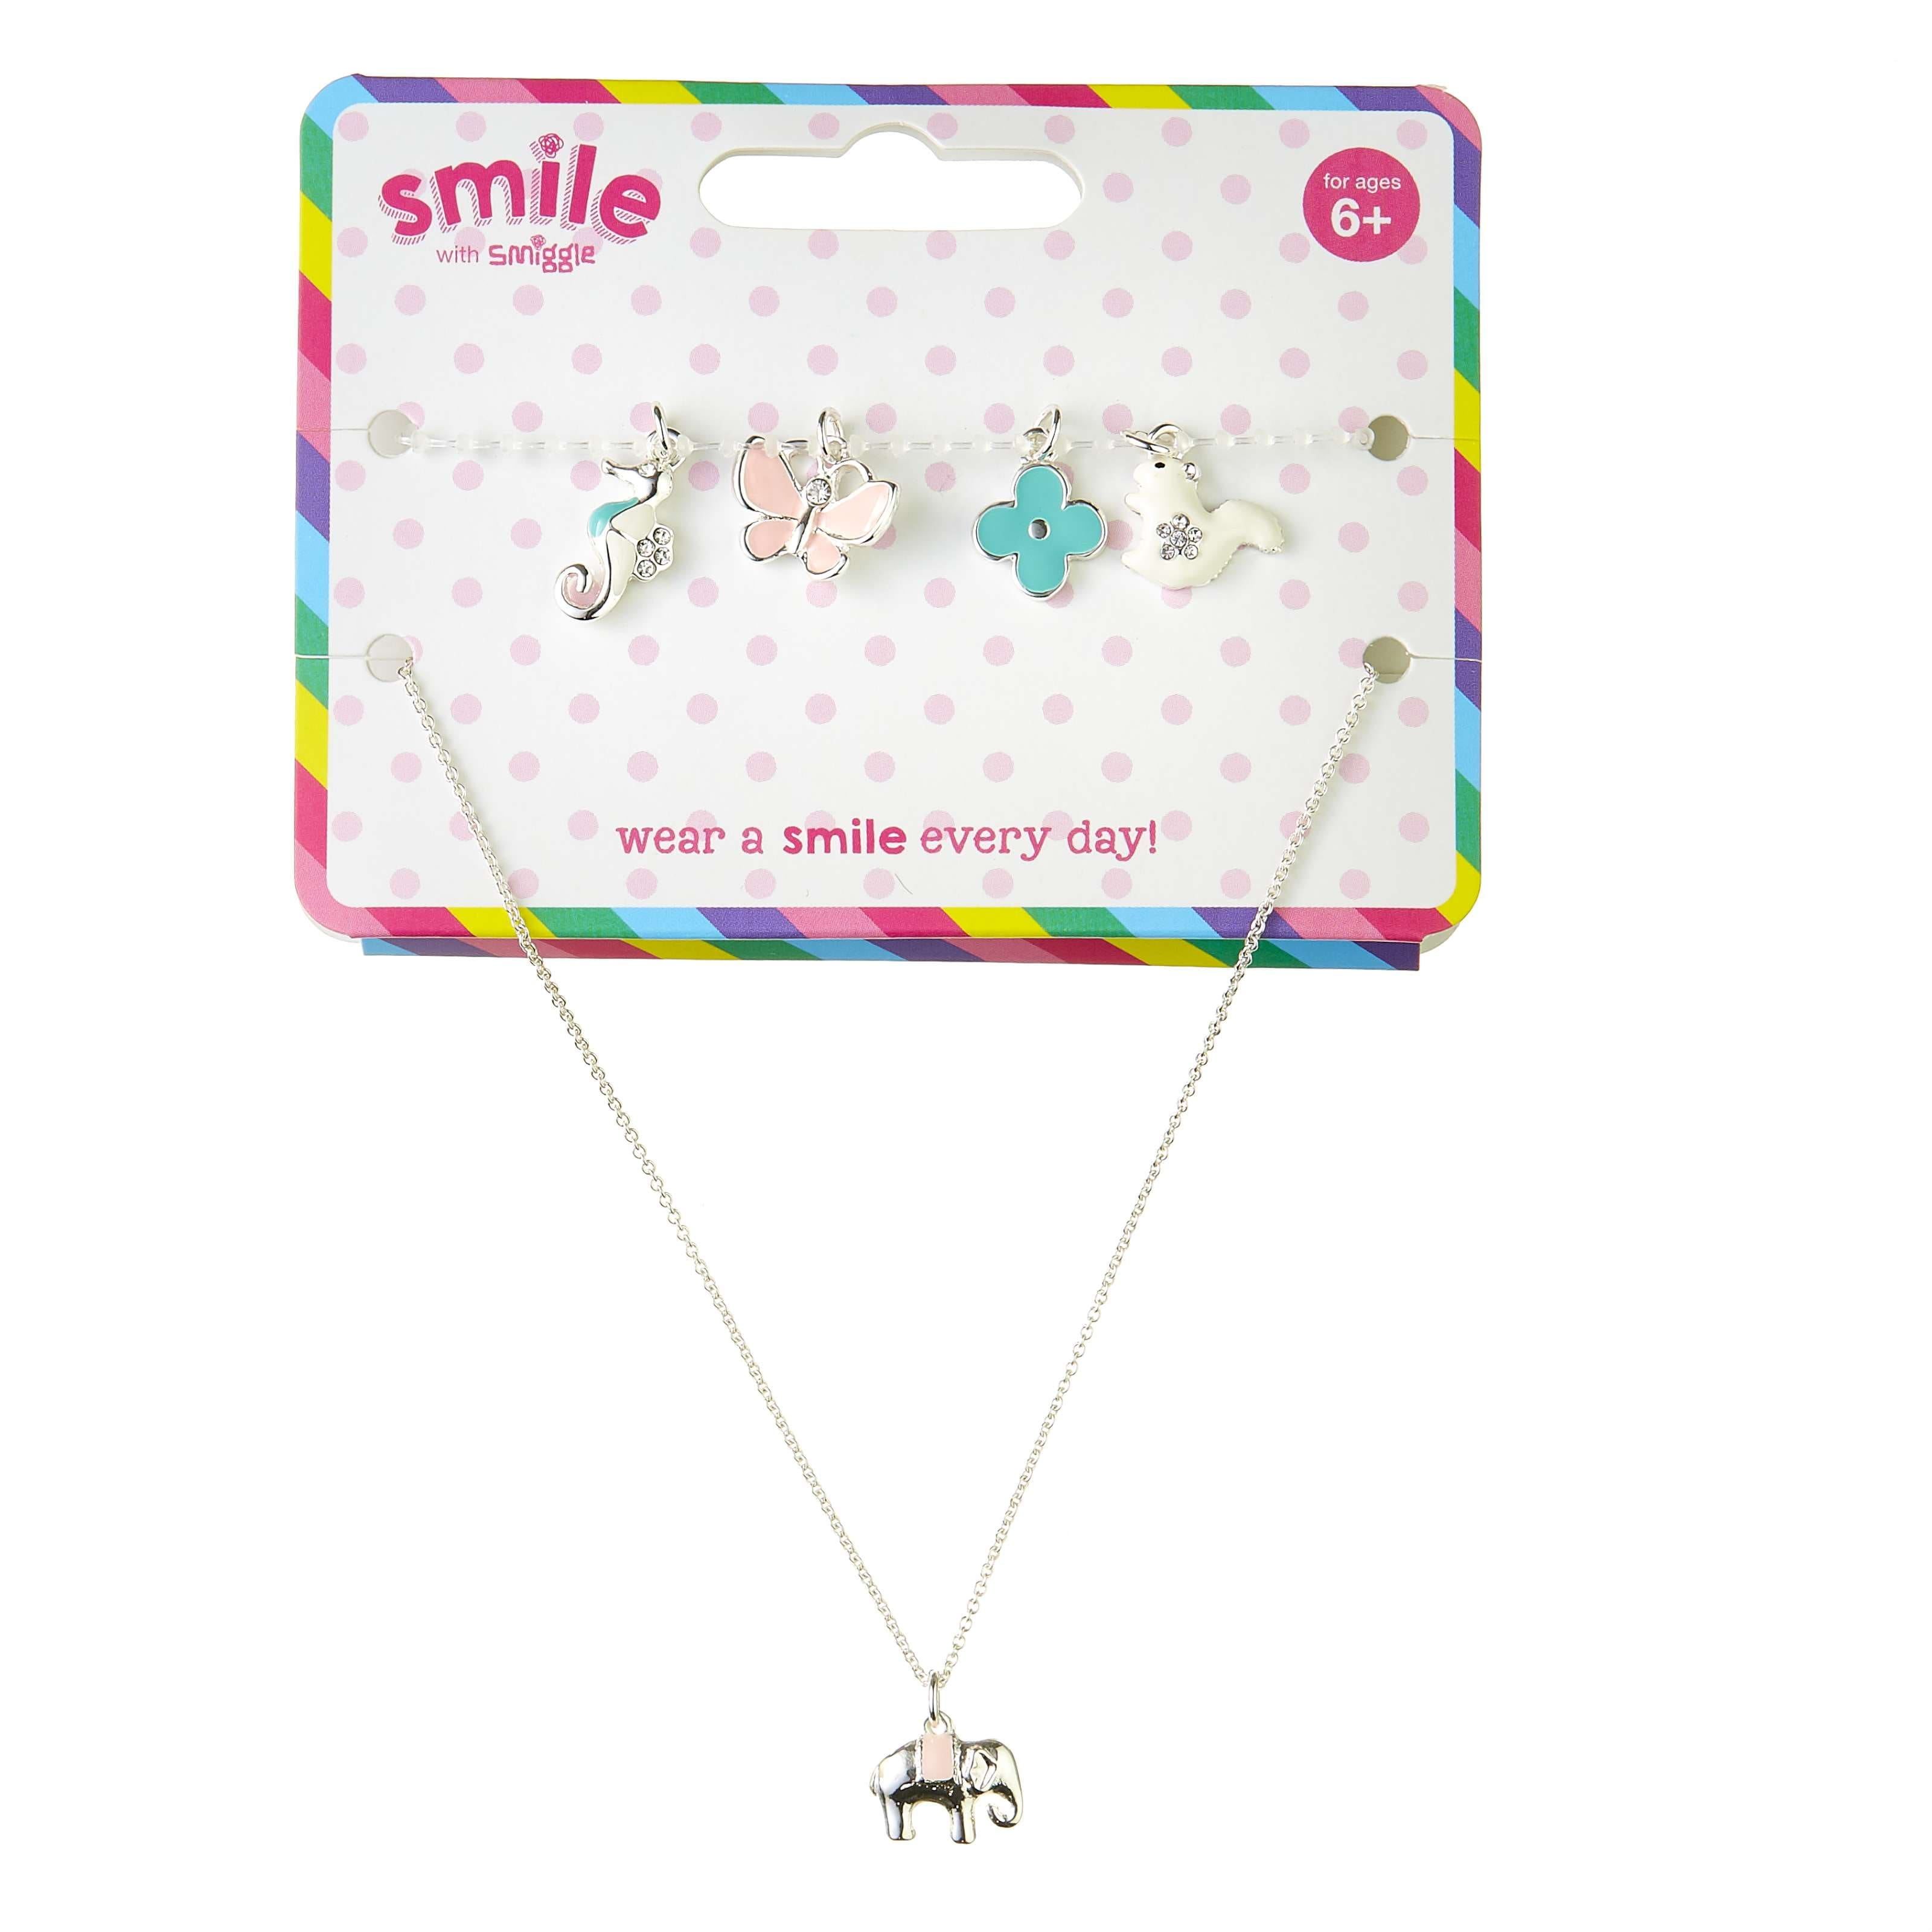 Smile Journey Charm Necklace